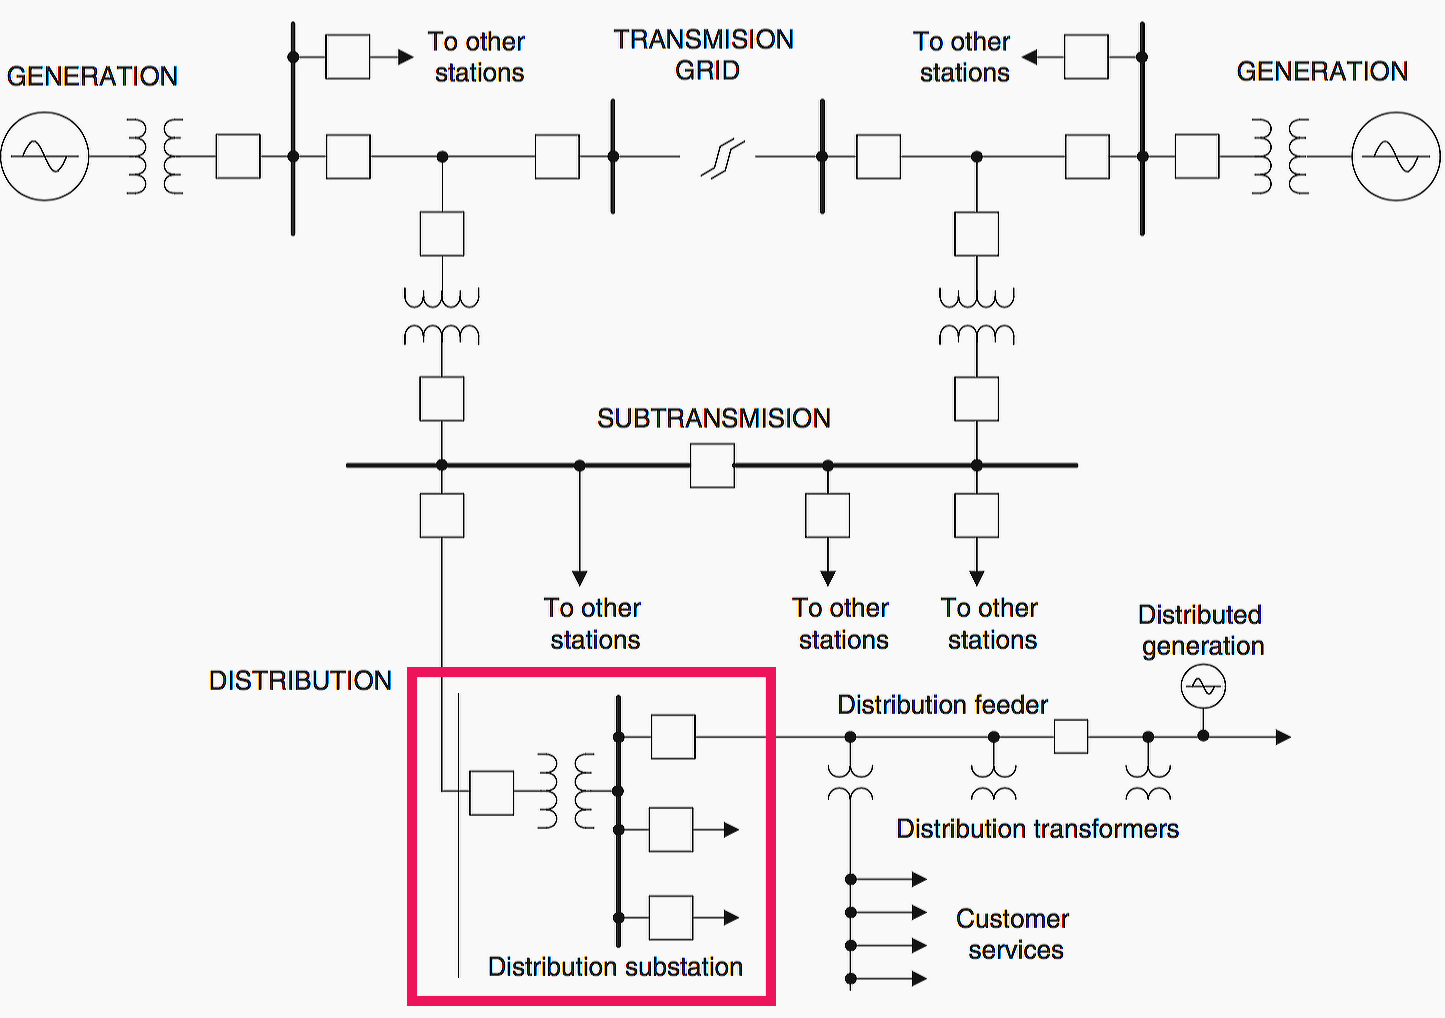 Single Line Diagram Of Power Distribution 2009 Toyota Corolla Audio Wiring Major Components System From Generation To Consumption